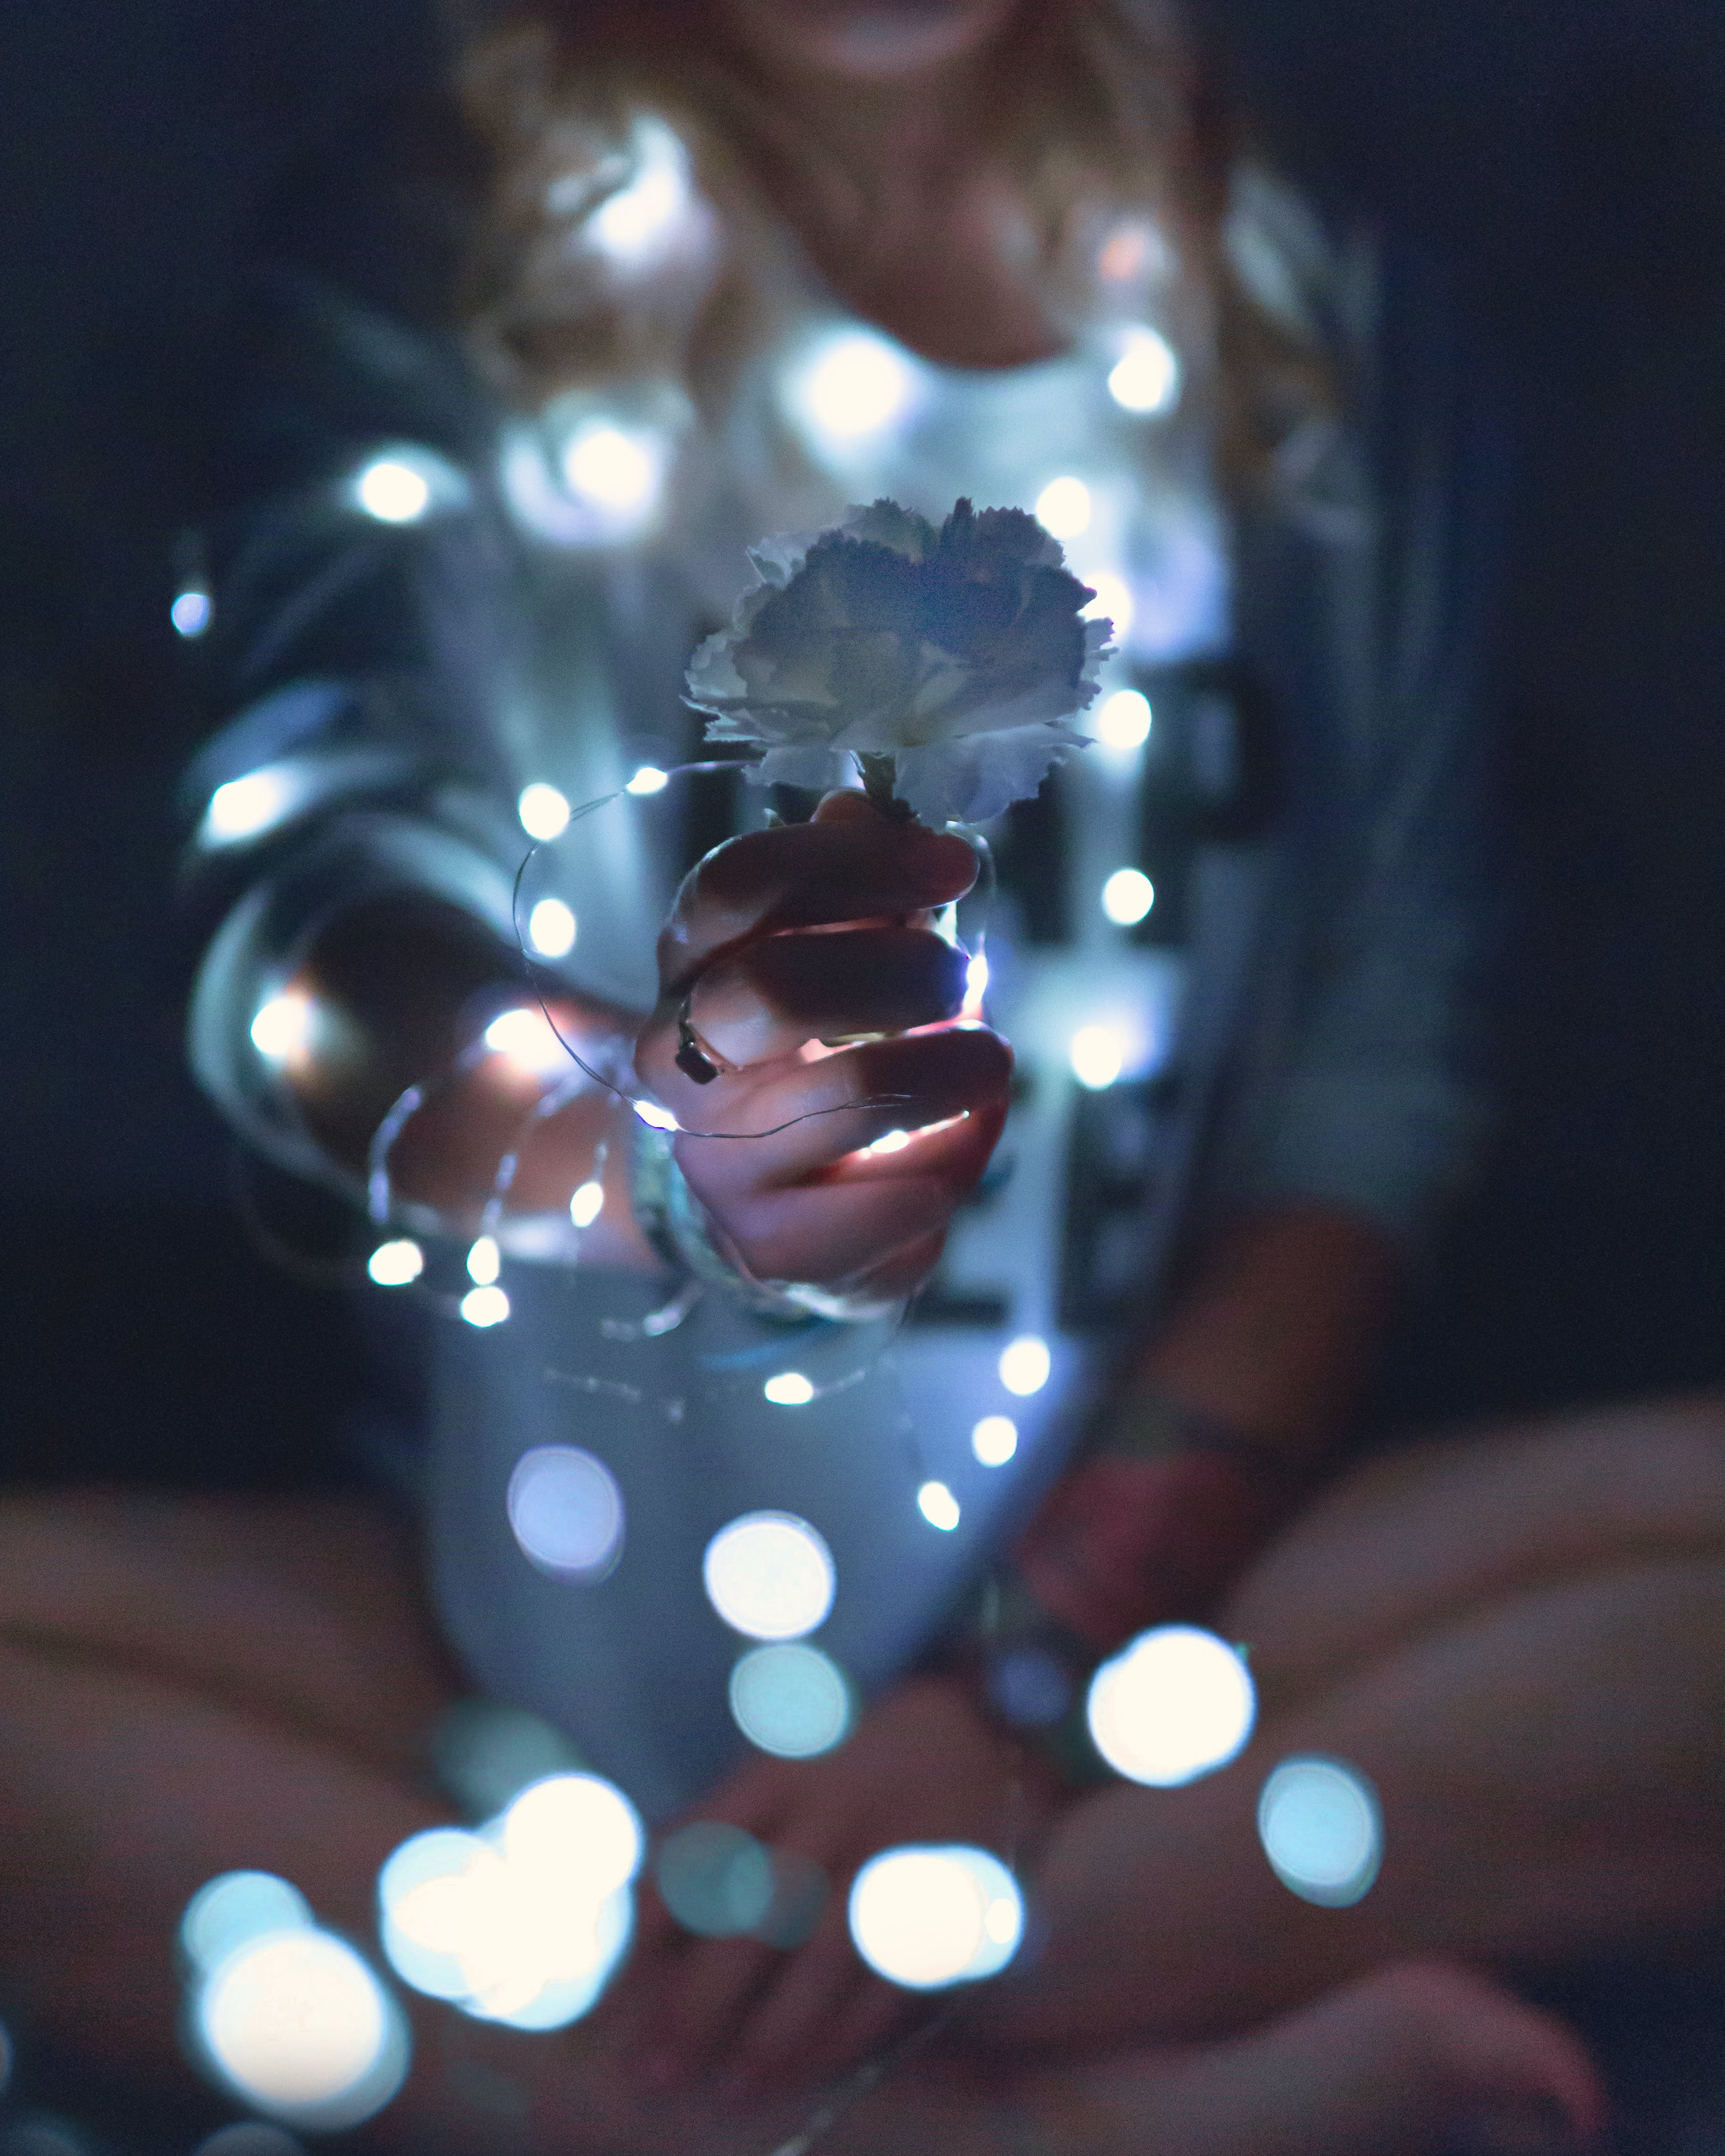 Person Holding Carnation Flower With String Lights